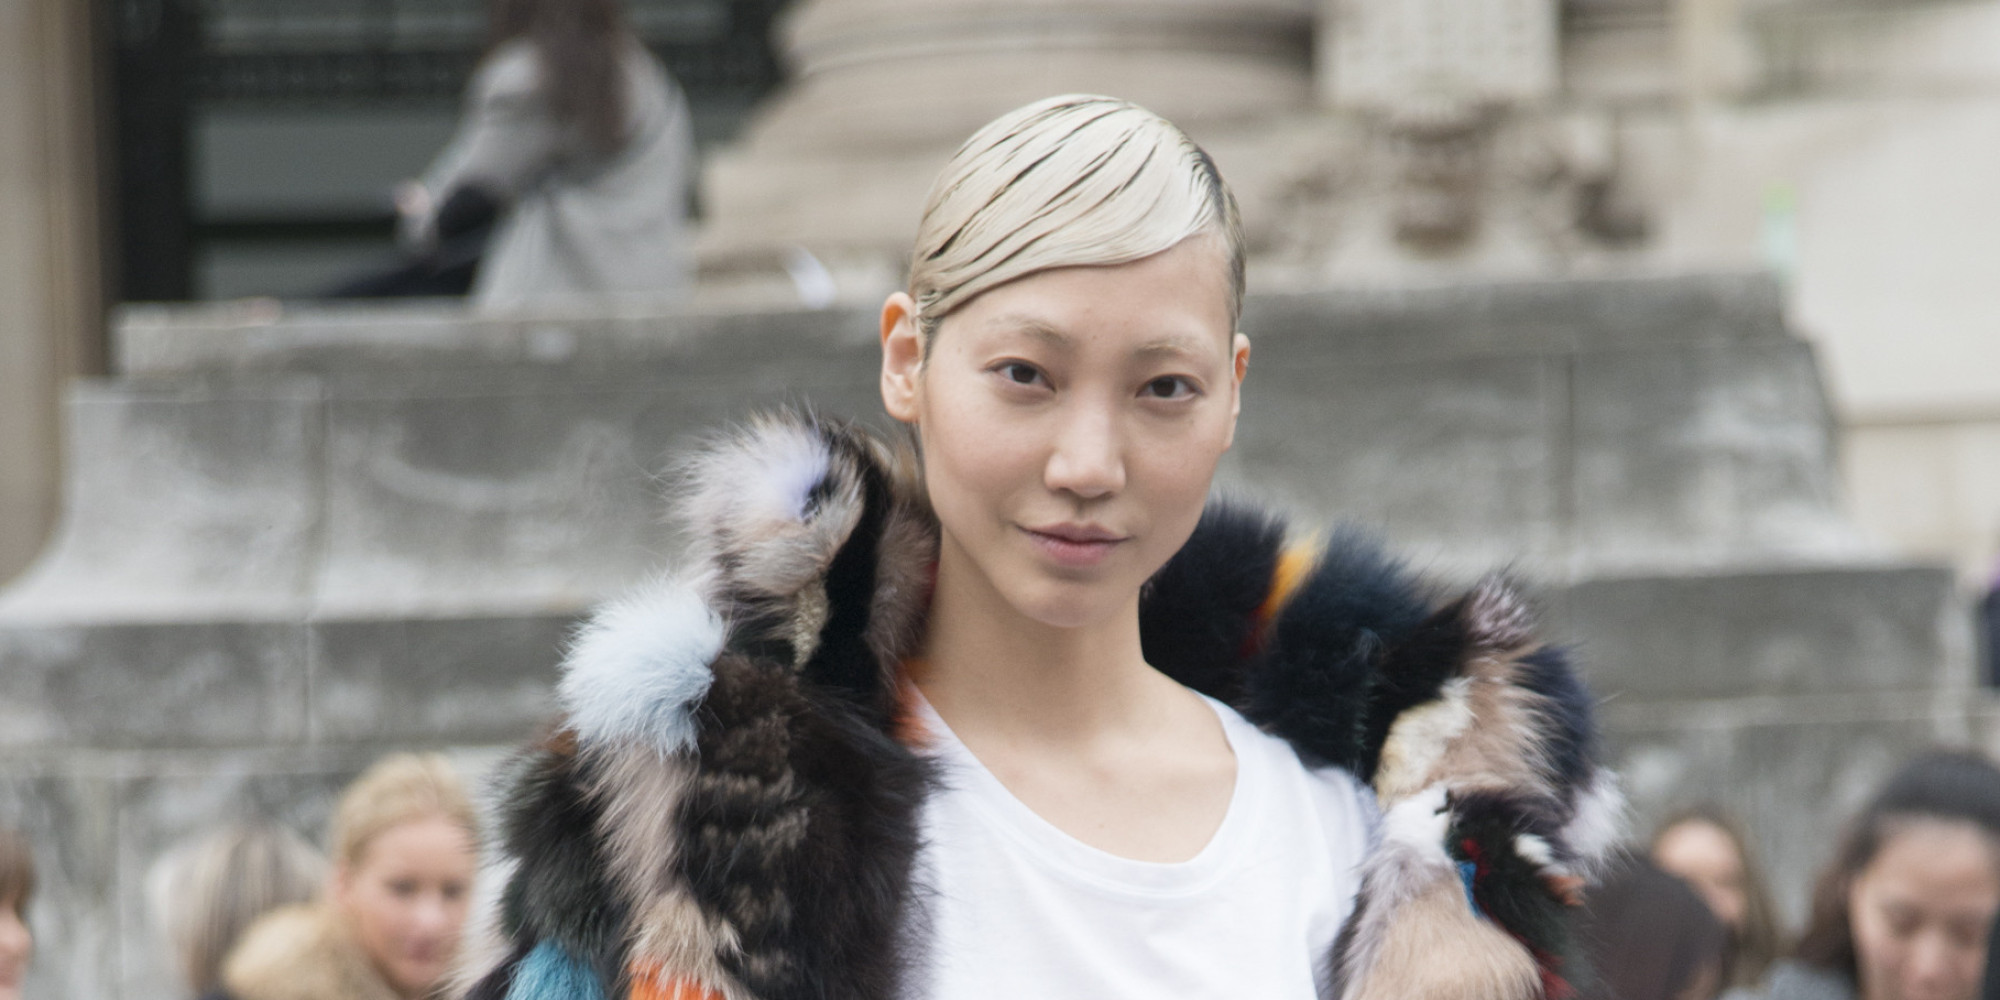 Soo joo face new park redken forecasting to wear for on every day in 2019